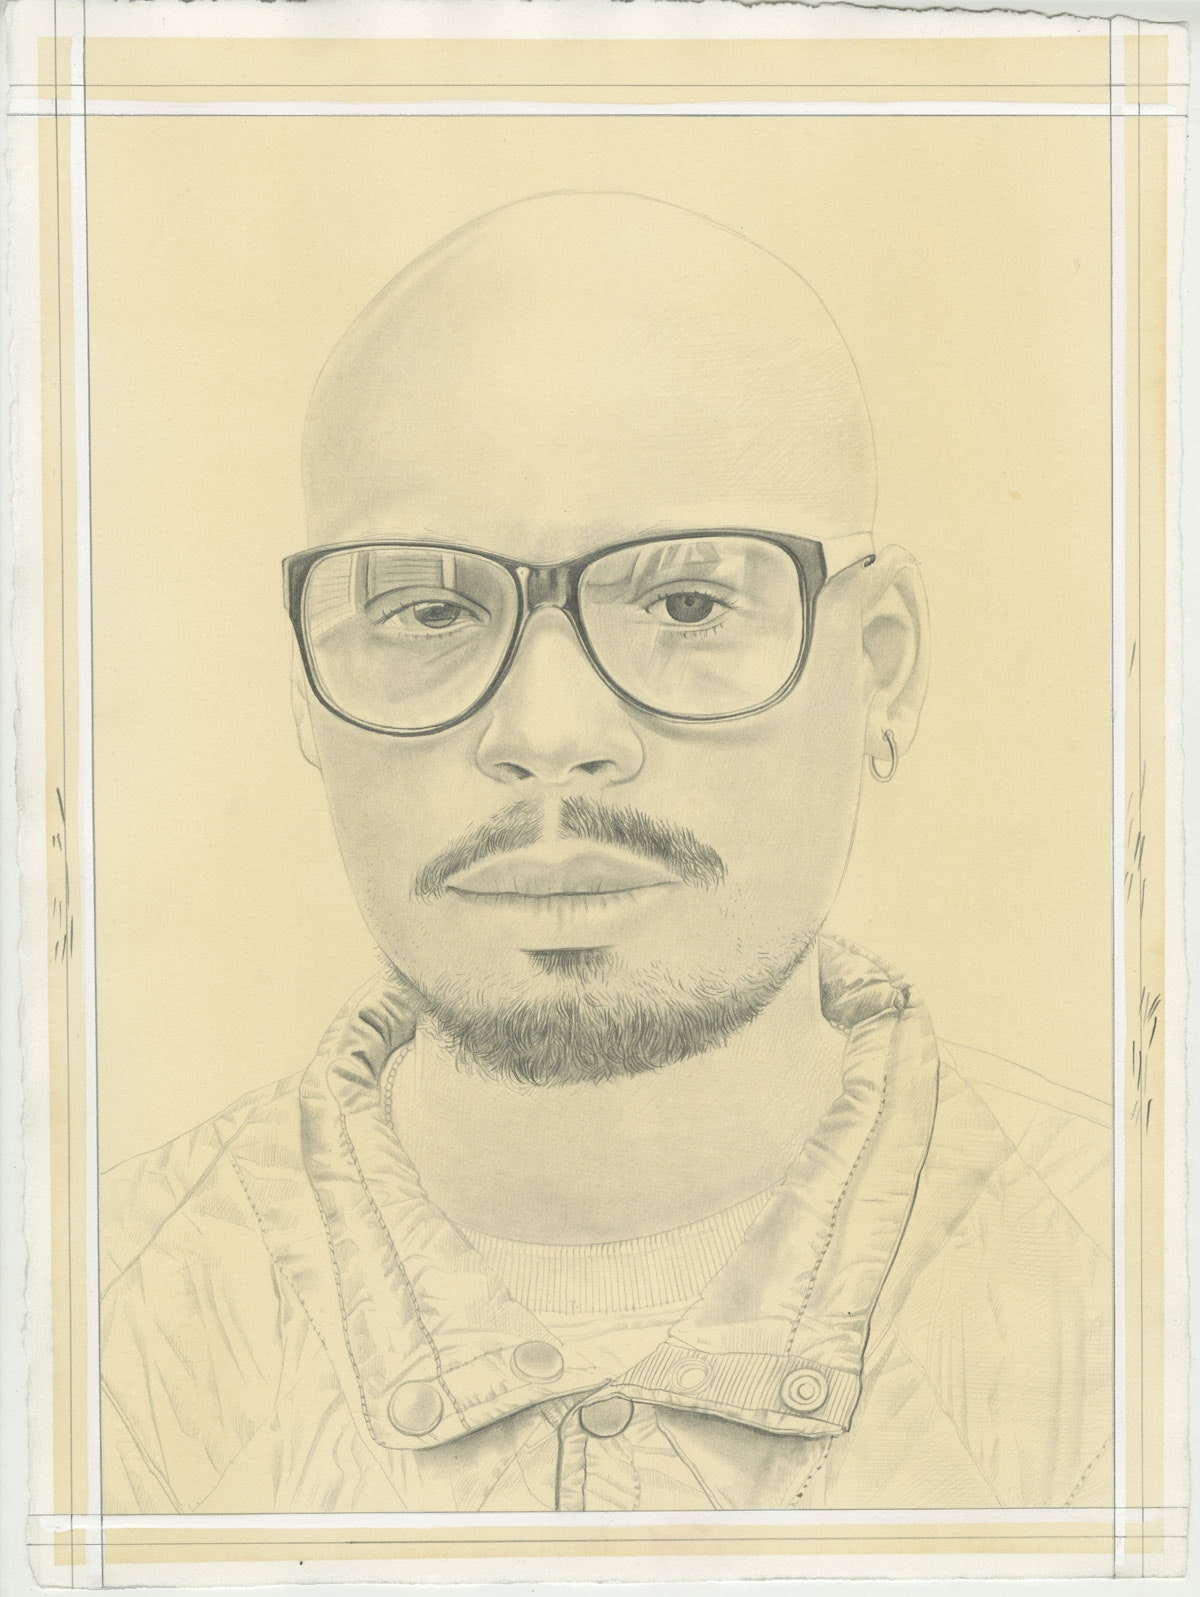 Portrait of Marcus Jahmal, pencil on paper by Phong Bui.